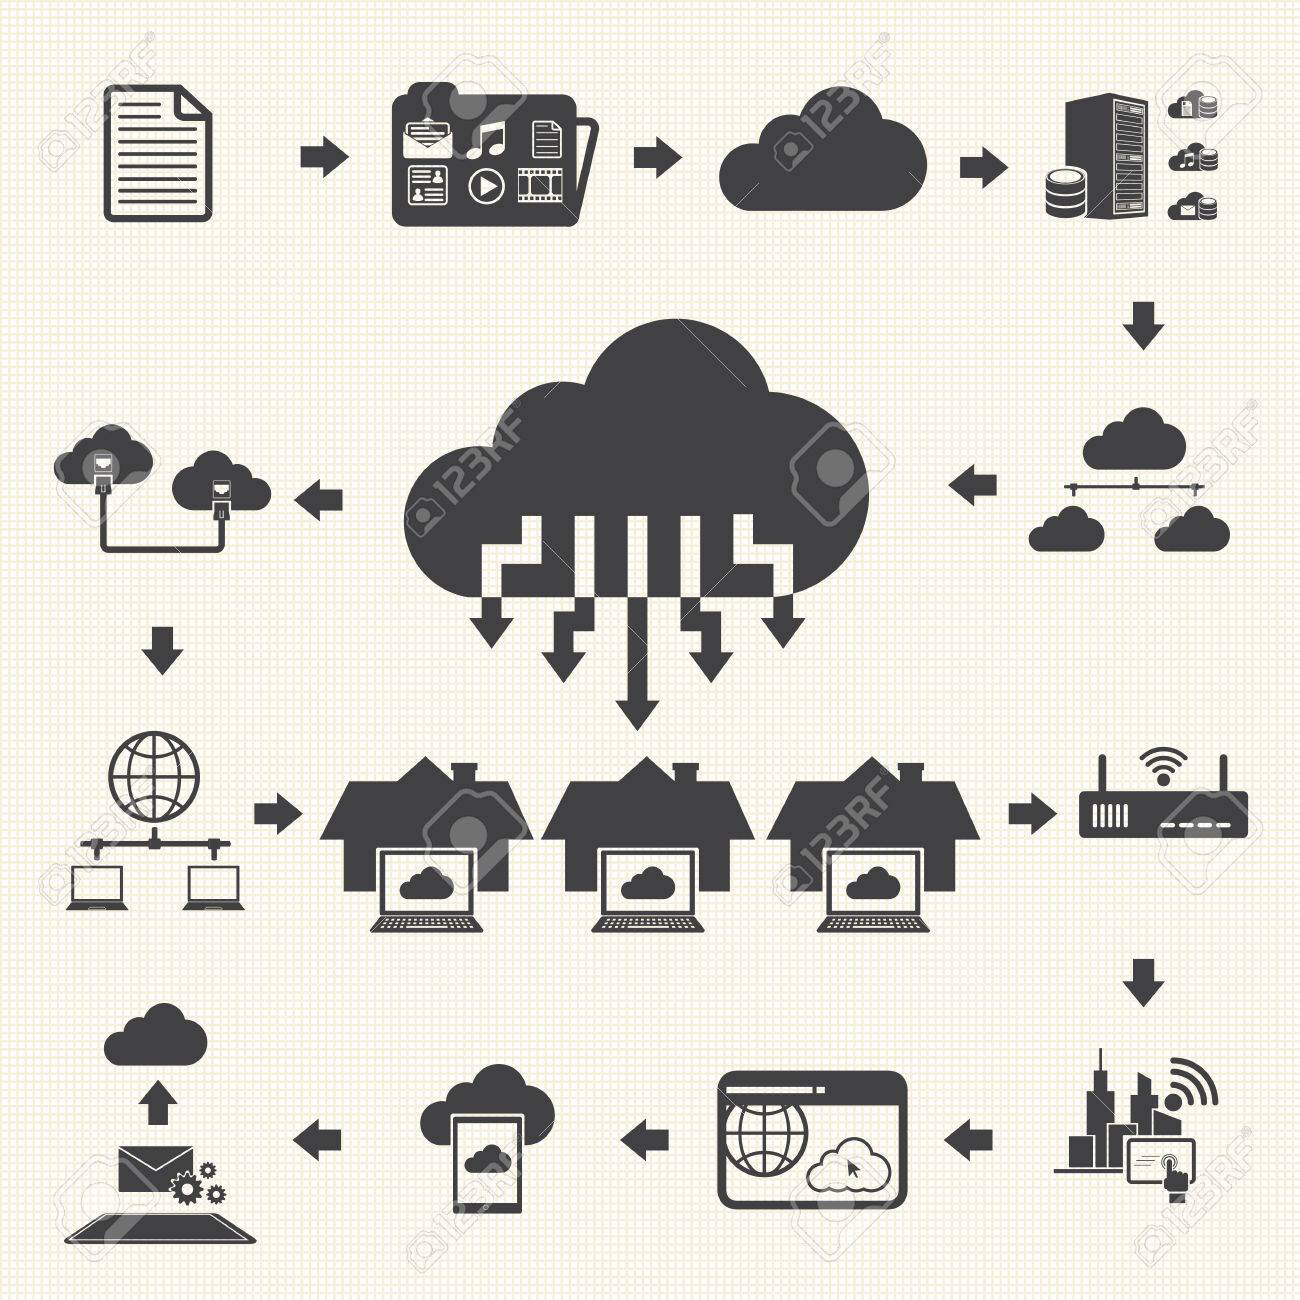 Cloud computing and Data management icons set Vector - 24657697